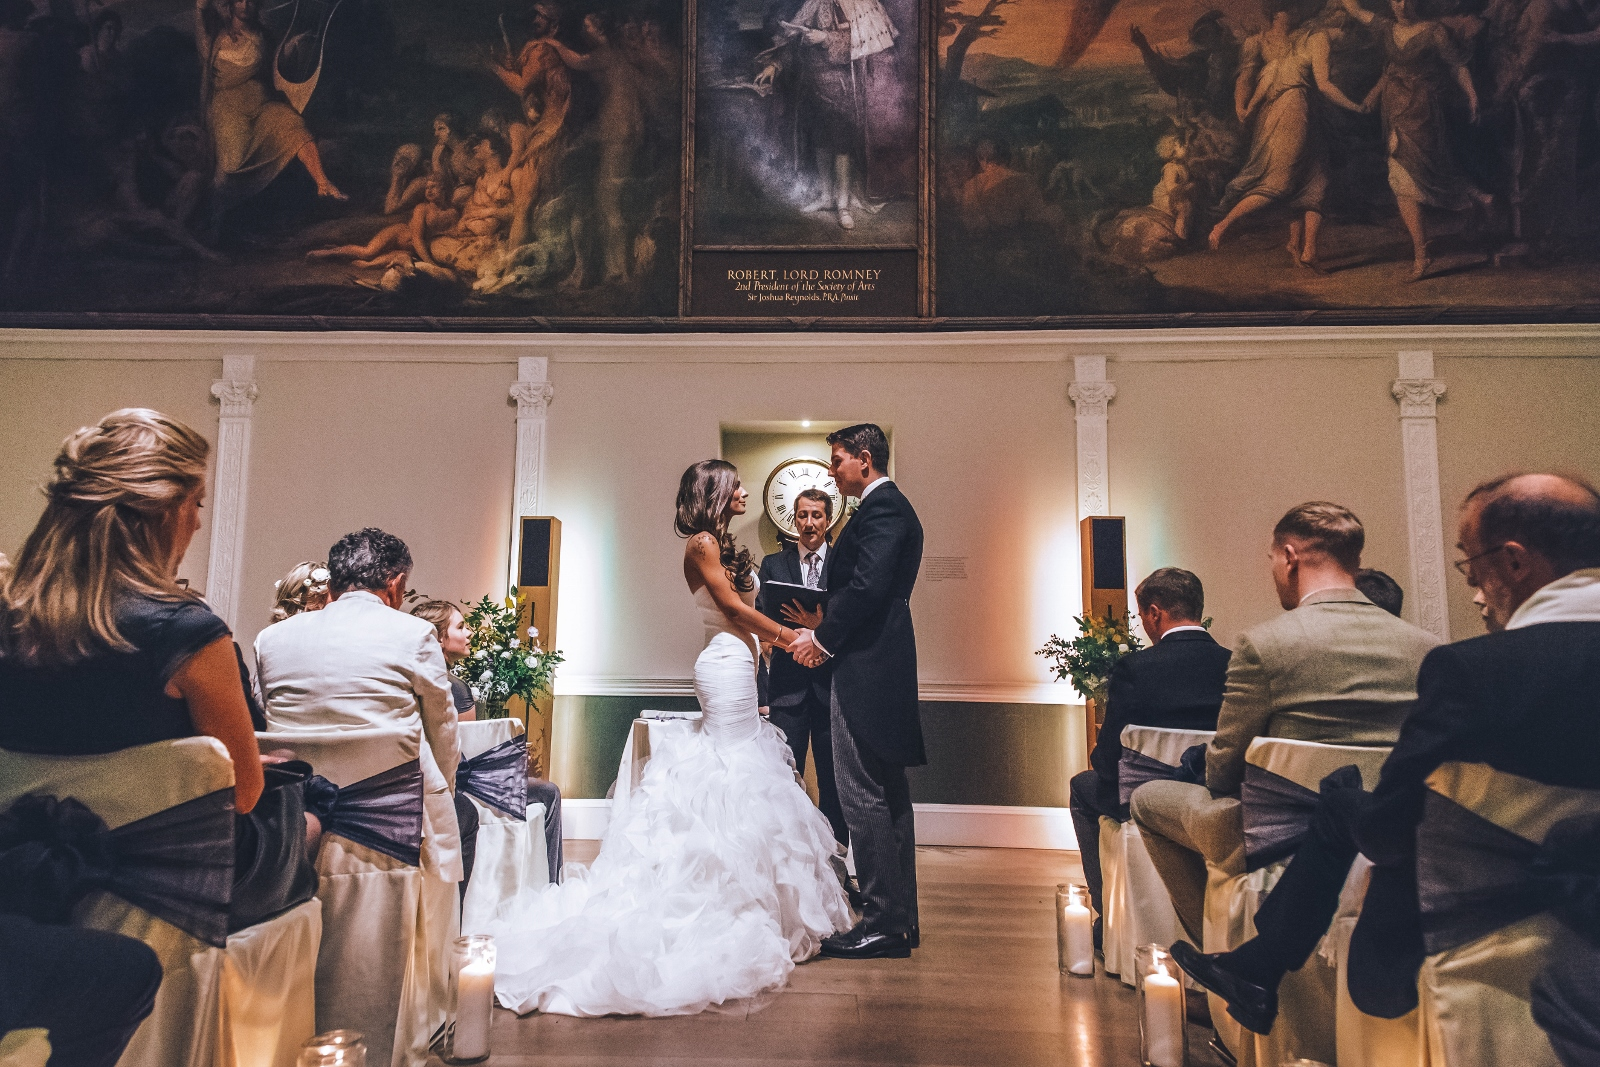 7 Reasons To Choose RSA House For An Unforgettable Wedding Day